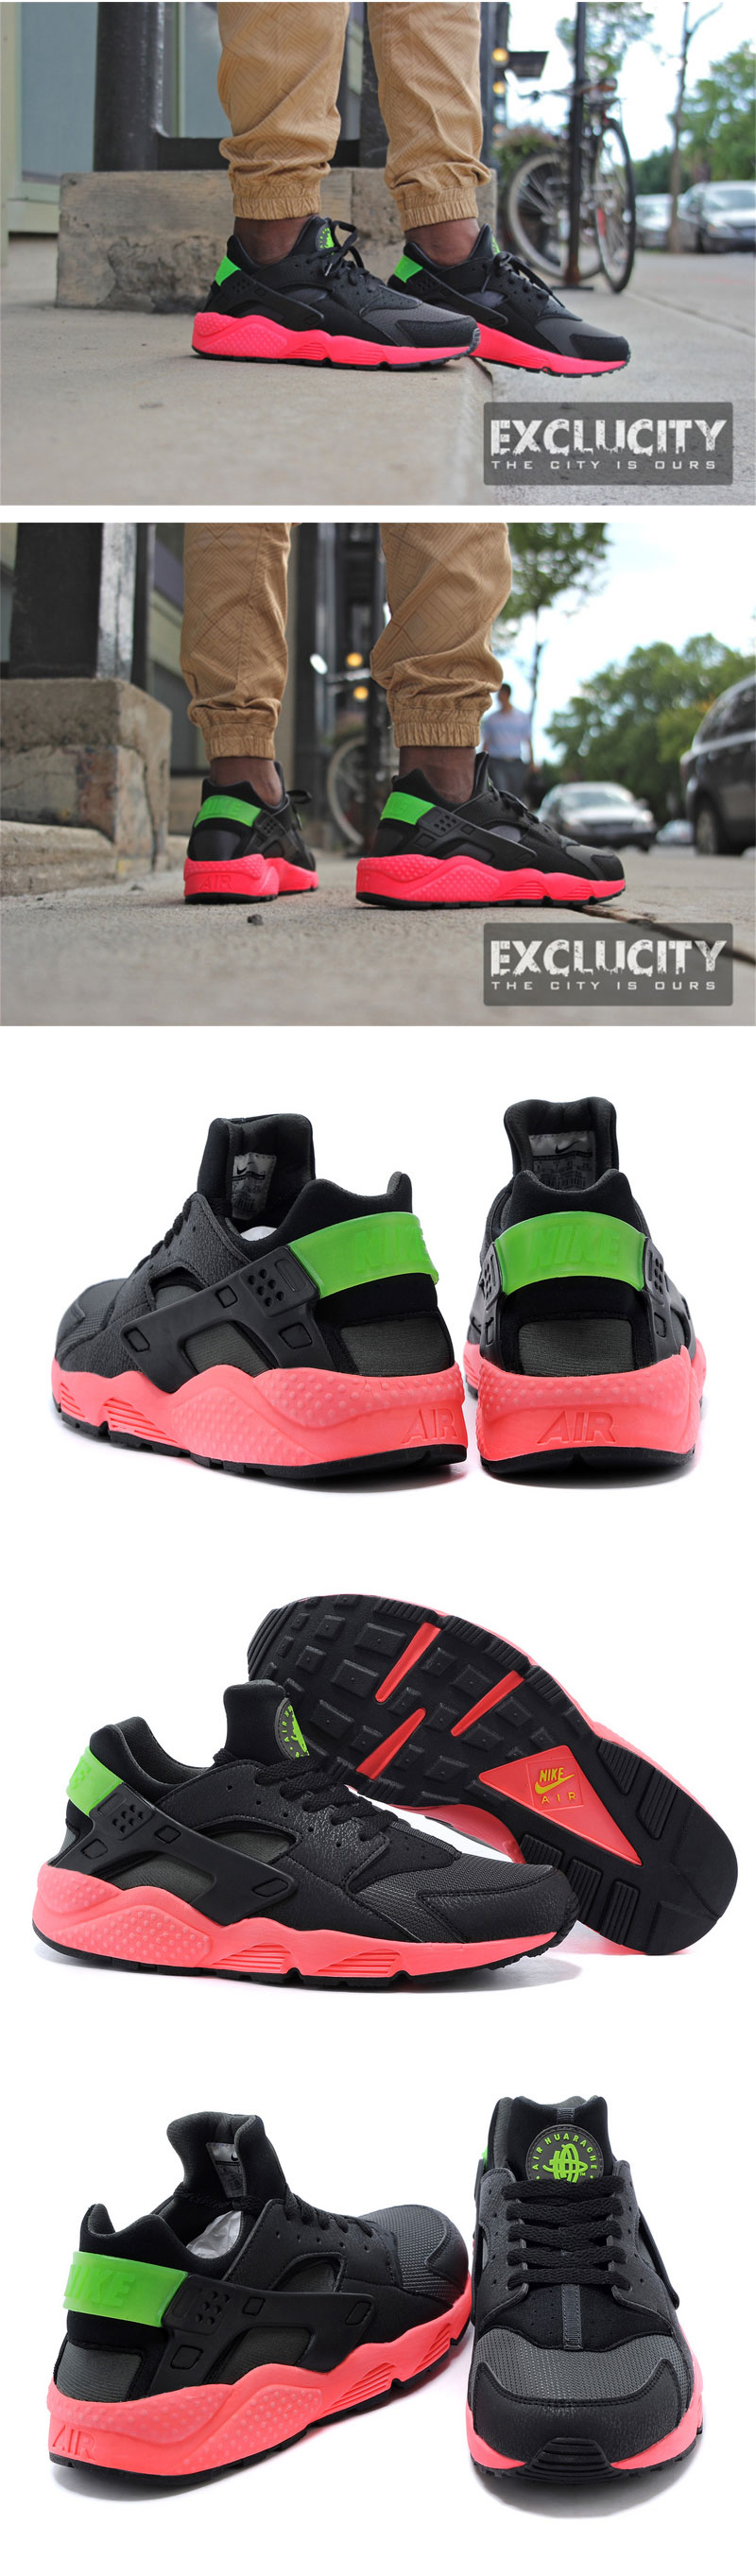 большое фото №6 Nike Huarache 318429 black-red-green